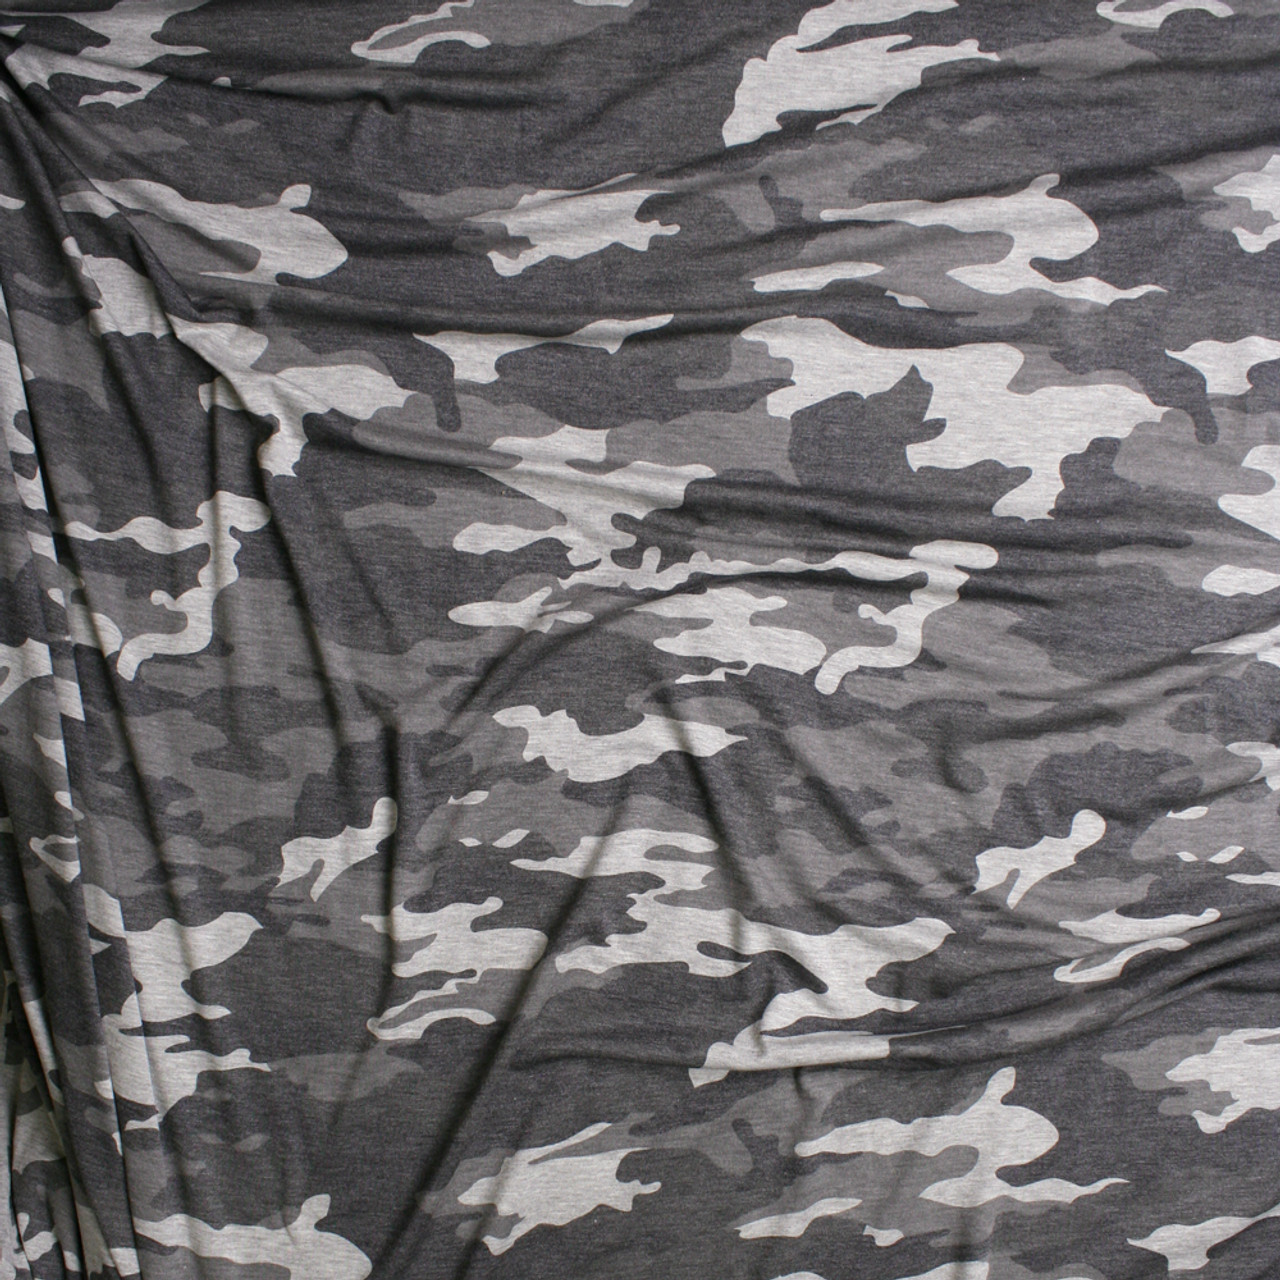 1af5aad2e49 ... Heather Grey Camouflage Midweight Stretch Rayon Jersey Knit Fabric By  The Yard - Wide shot